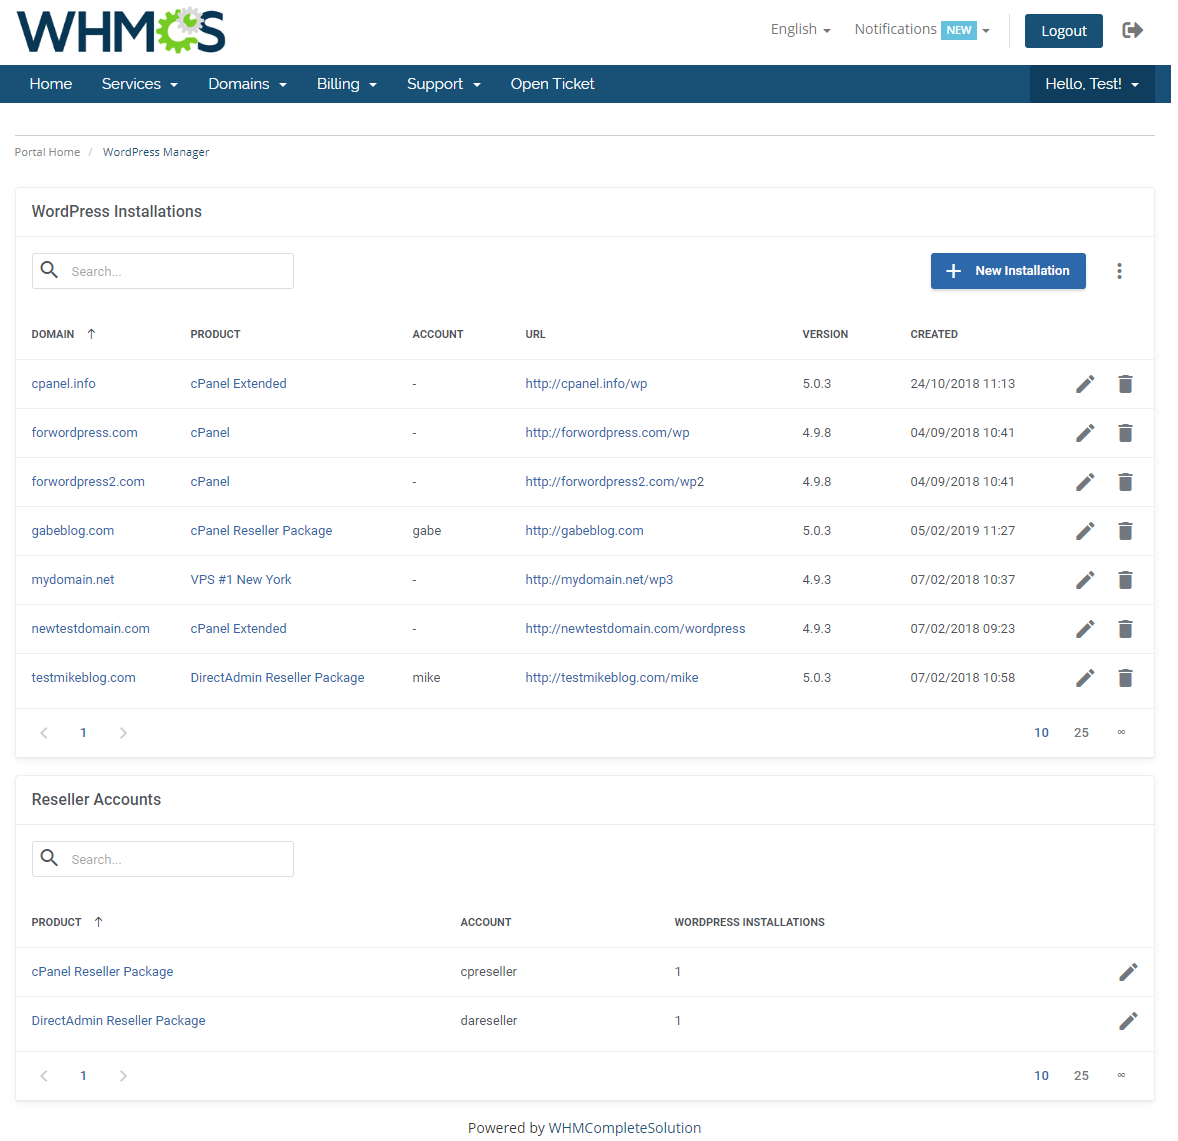 WordPress Manager For WHMCS: Module Screenshot 1